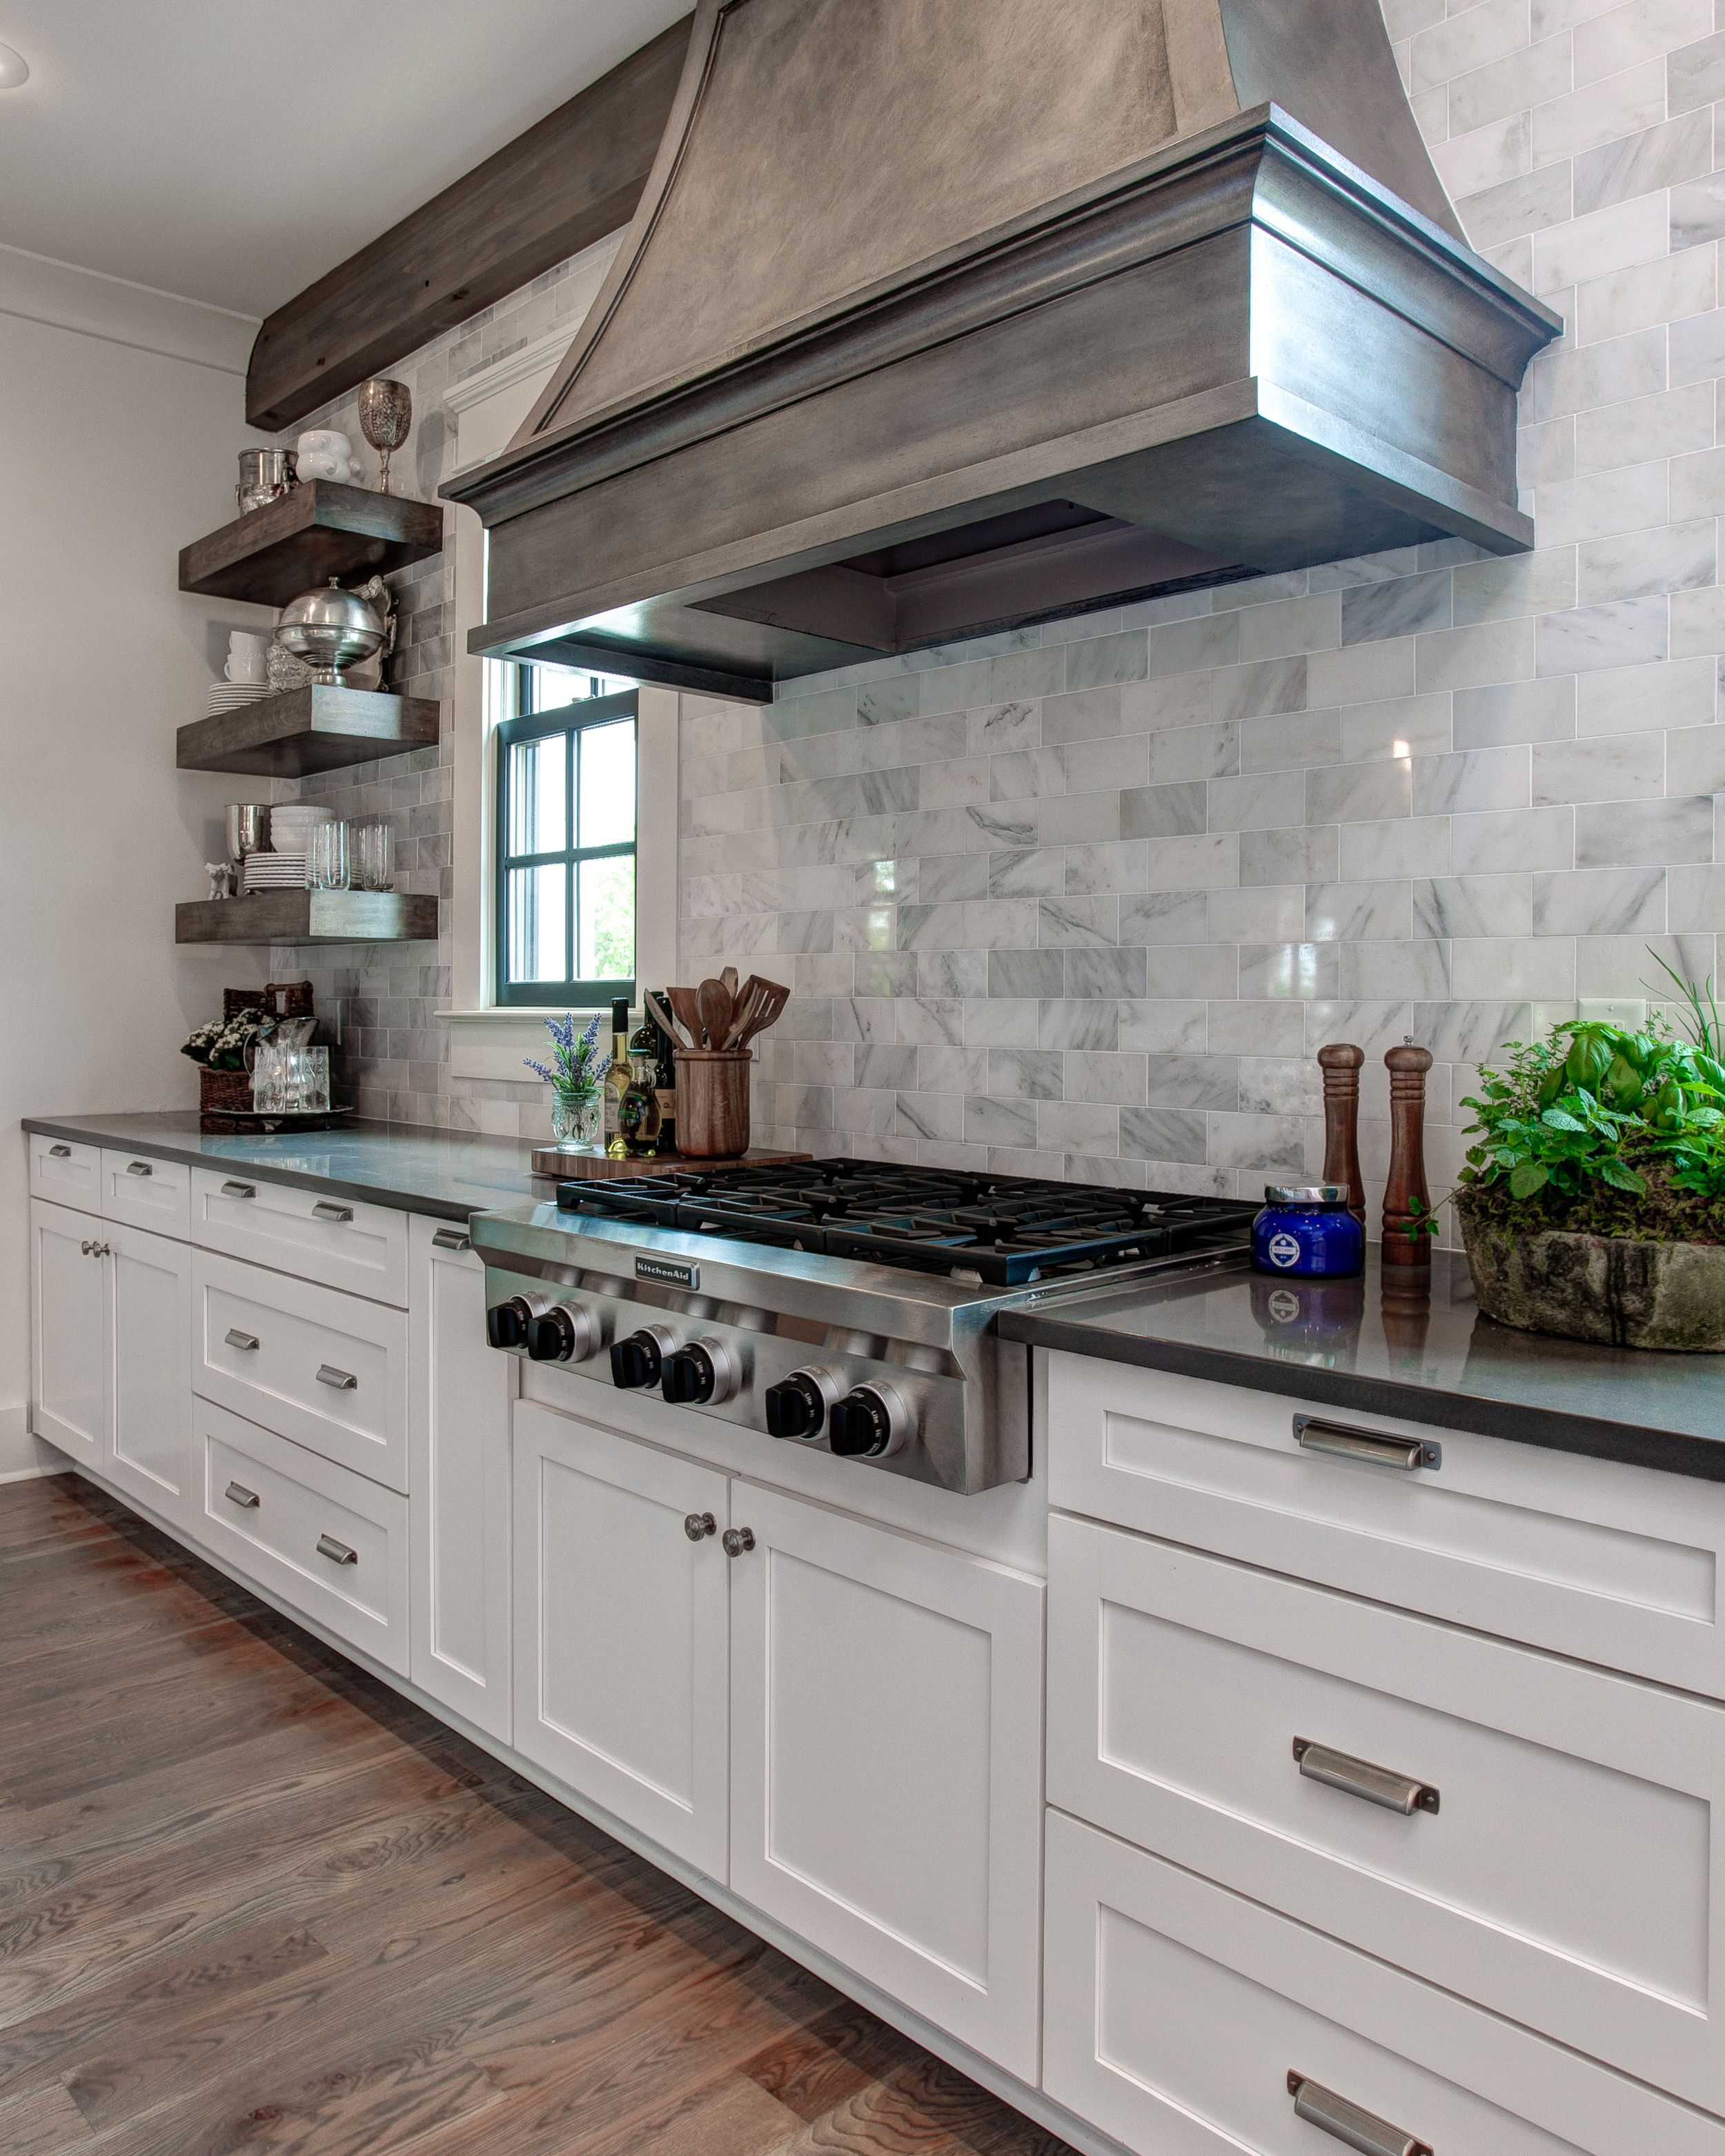 The Post You Have Been Waiting For Southern Living Design House Behind The Scene Providence Design In 2020 Kitchen Design Colonial Kitchen Living Design